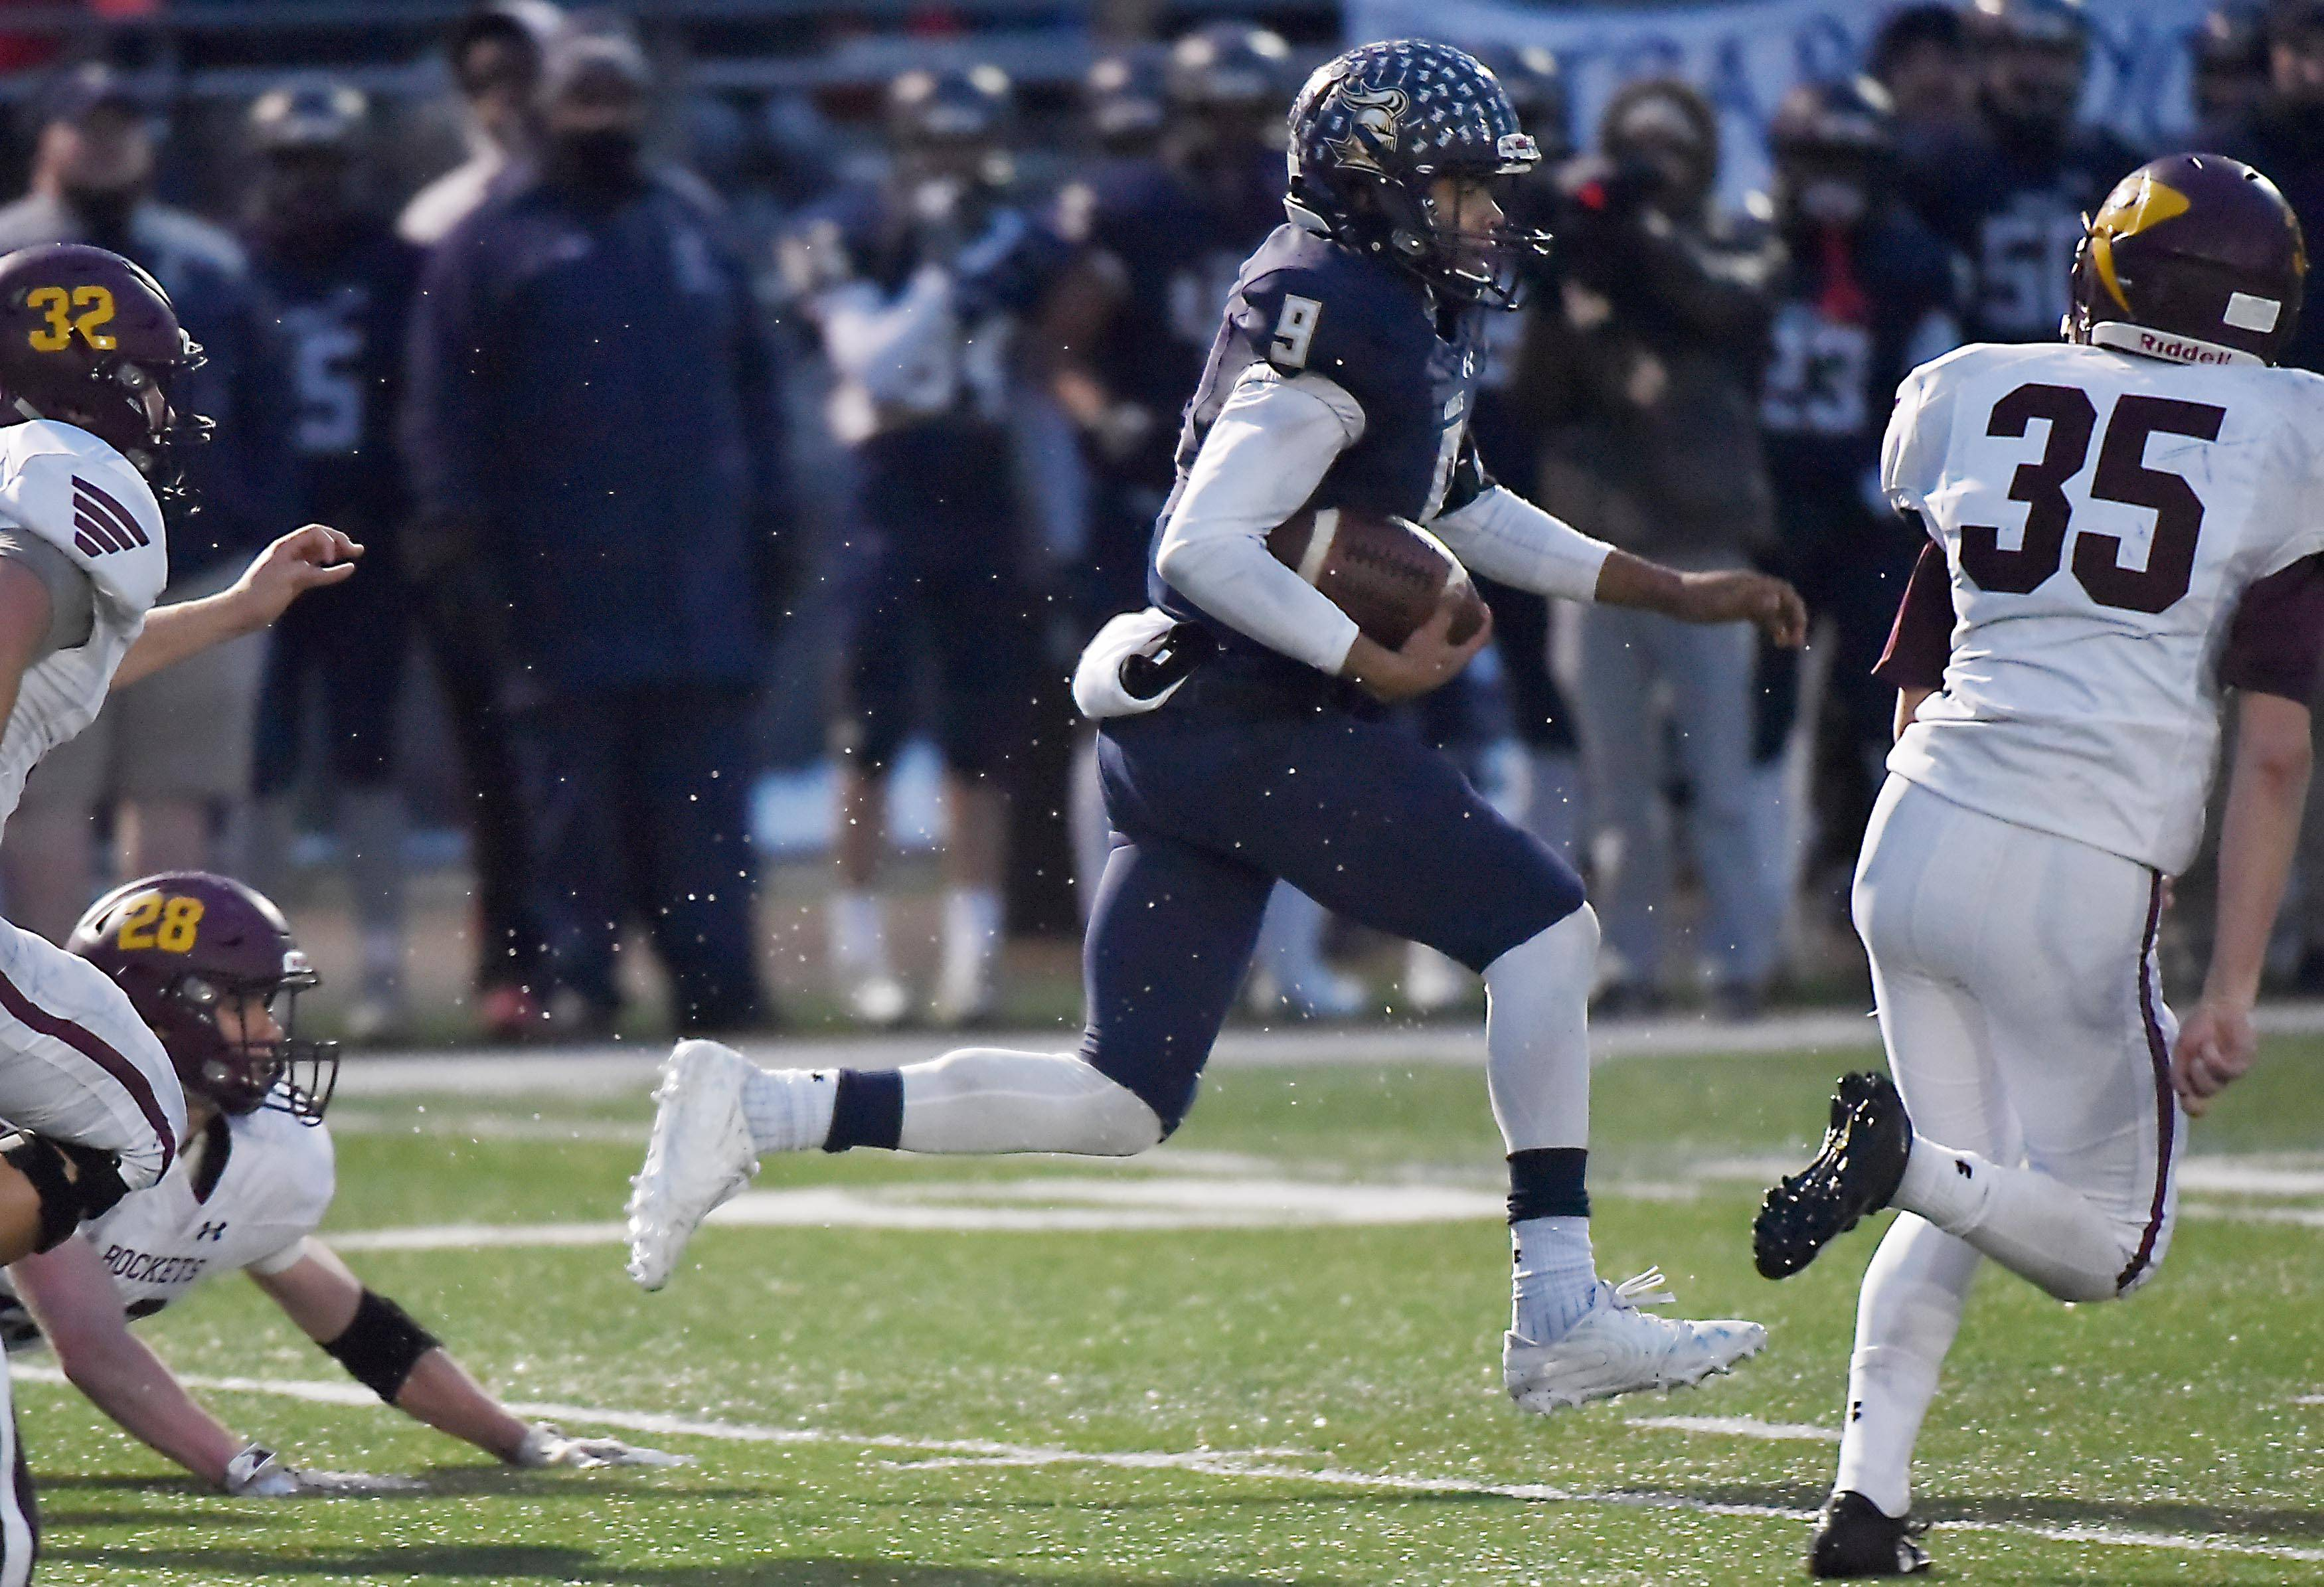 IC Catholic's Khalil Saunders runs for a long gain in the first half against Richmond-Burton in a semifinal football playoff game Saturday in Elmhurst.